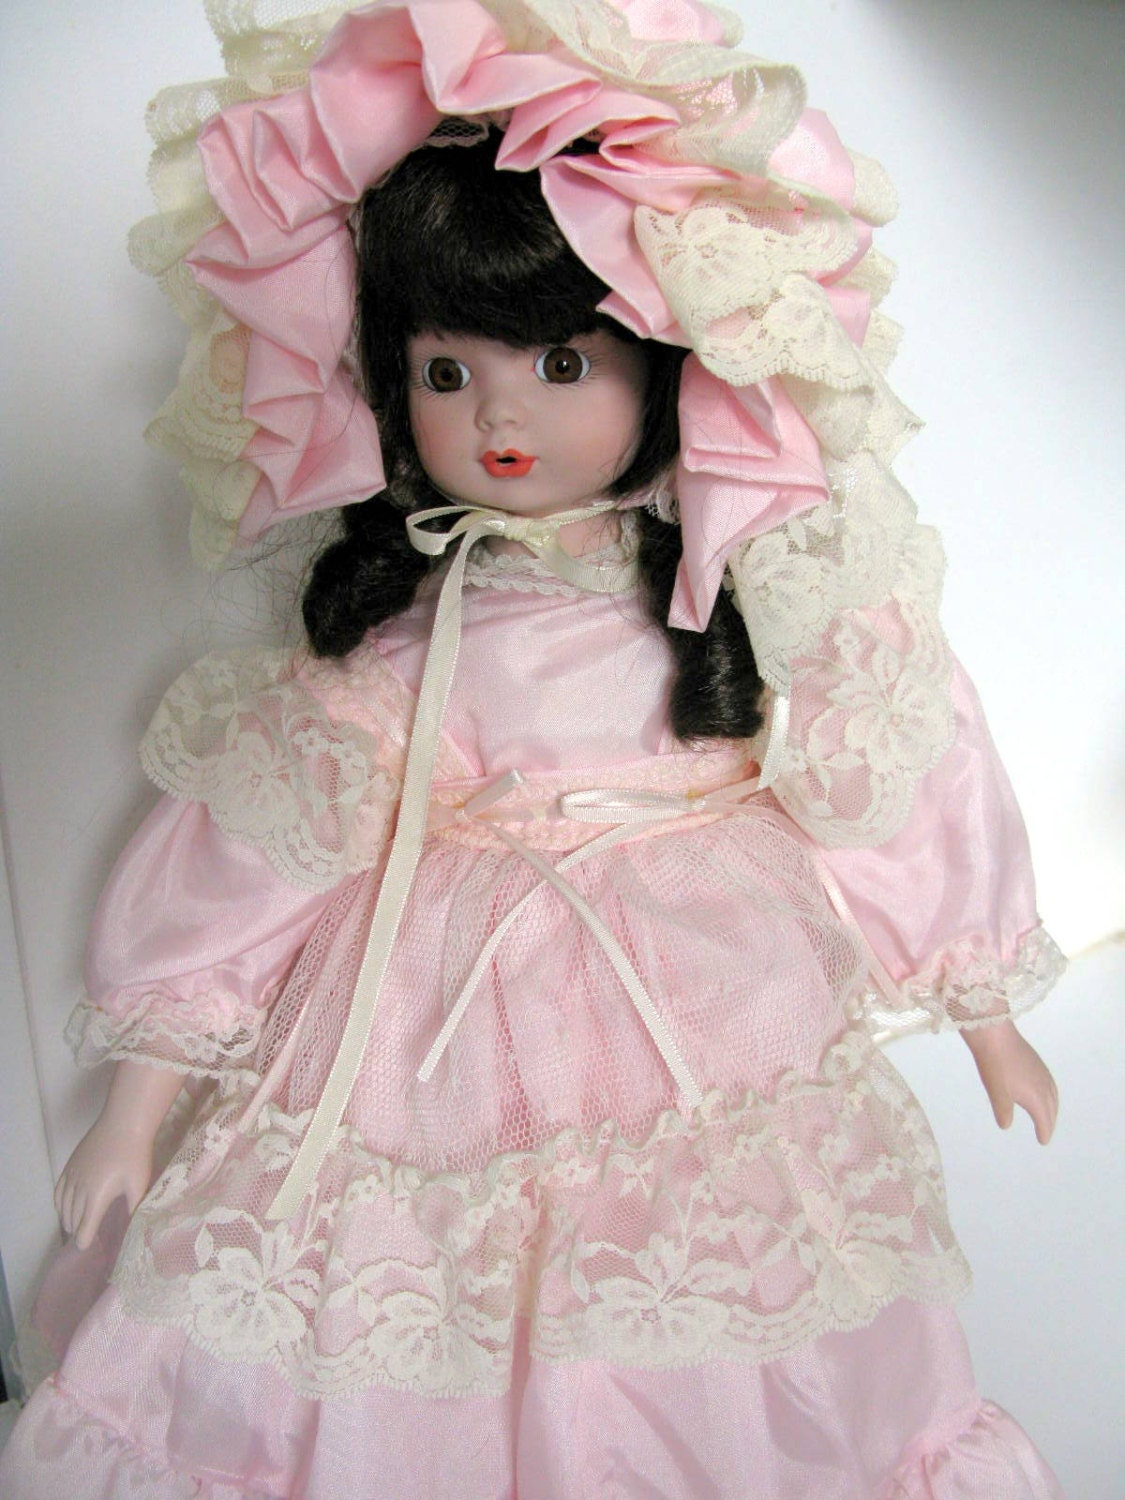 Seymour Mann Porcelain Doll Collectible Doll by ...